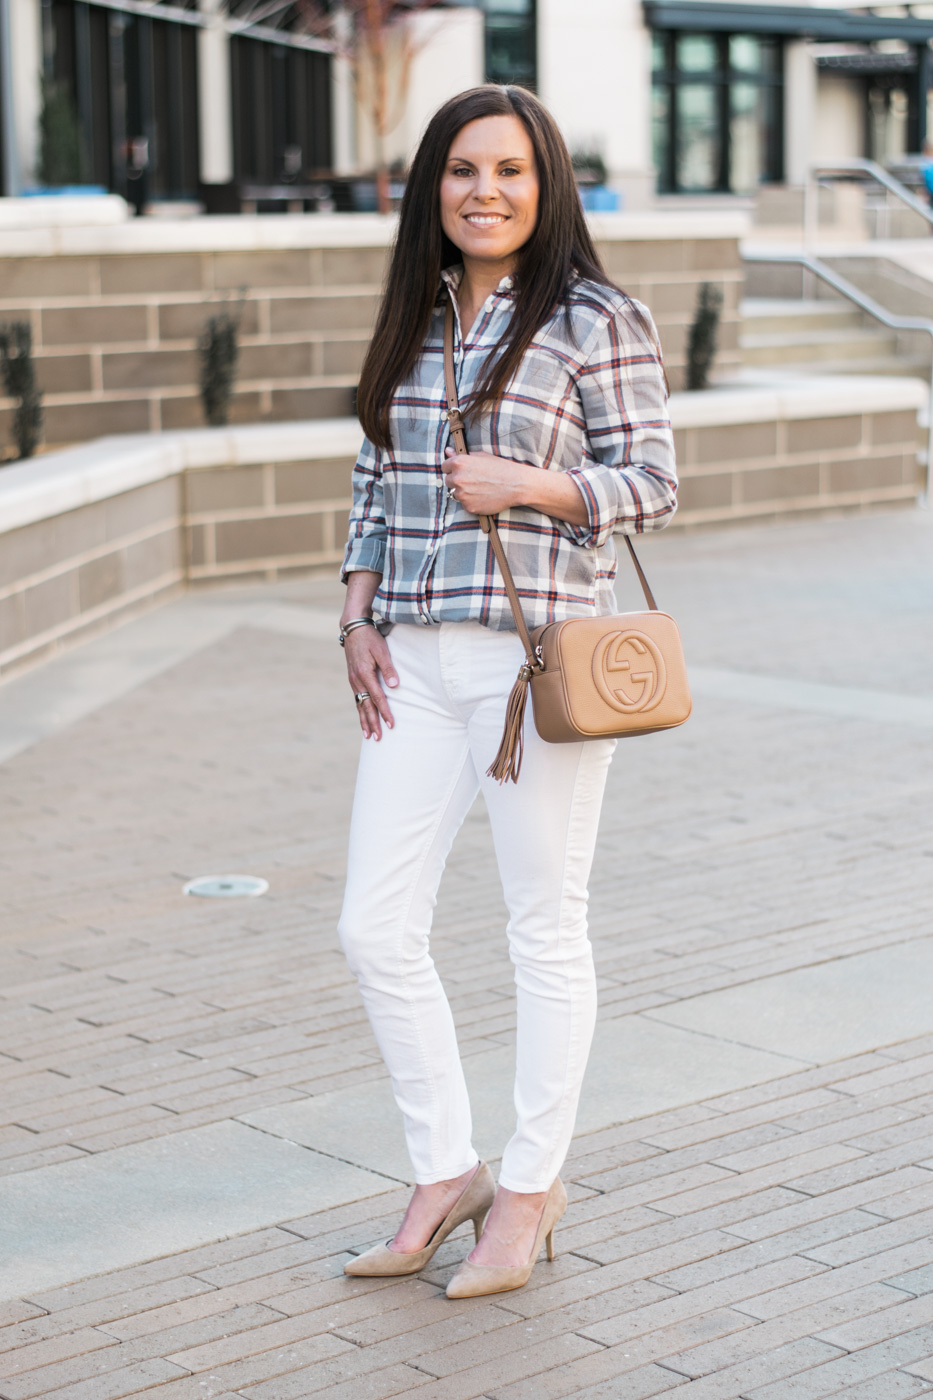 J.Crew Classic Plaid Boy Shirt, Gucci Disco Bag, 7 for all mankind white skinny jeans, Marc Jacobs heel